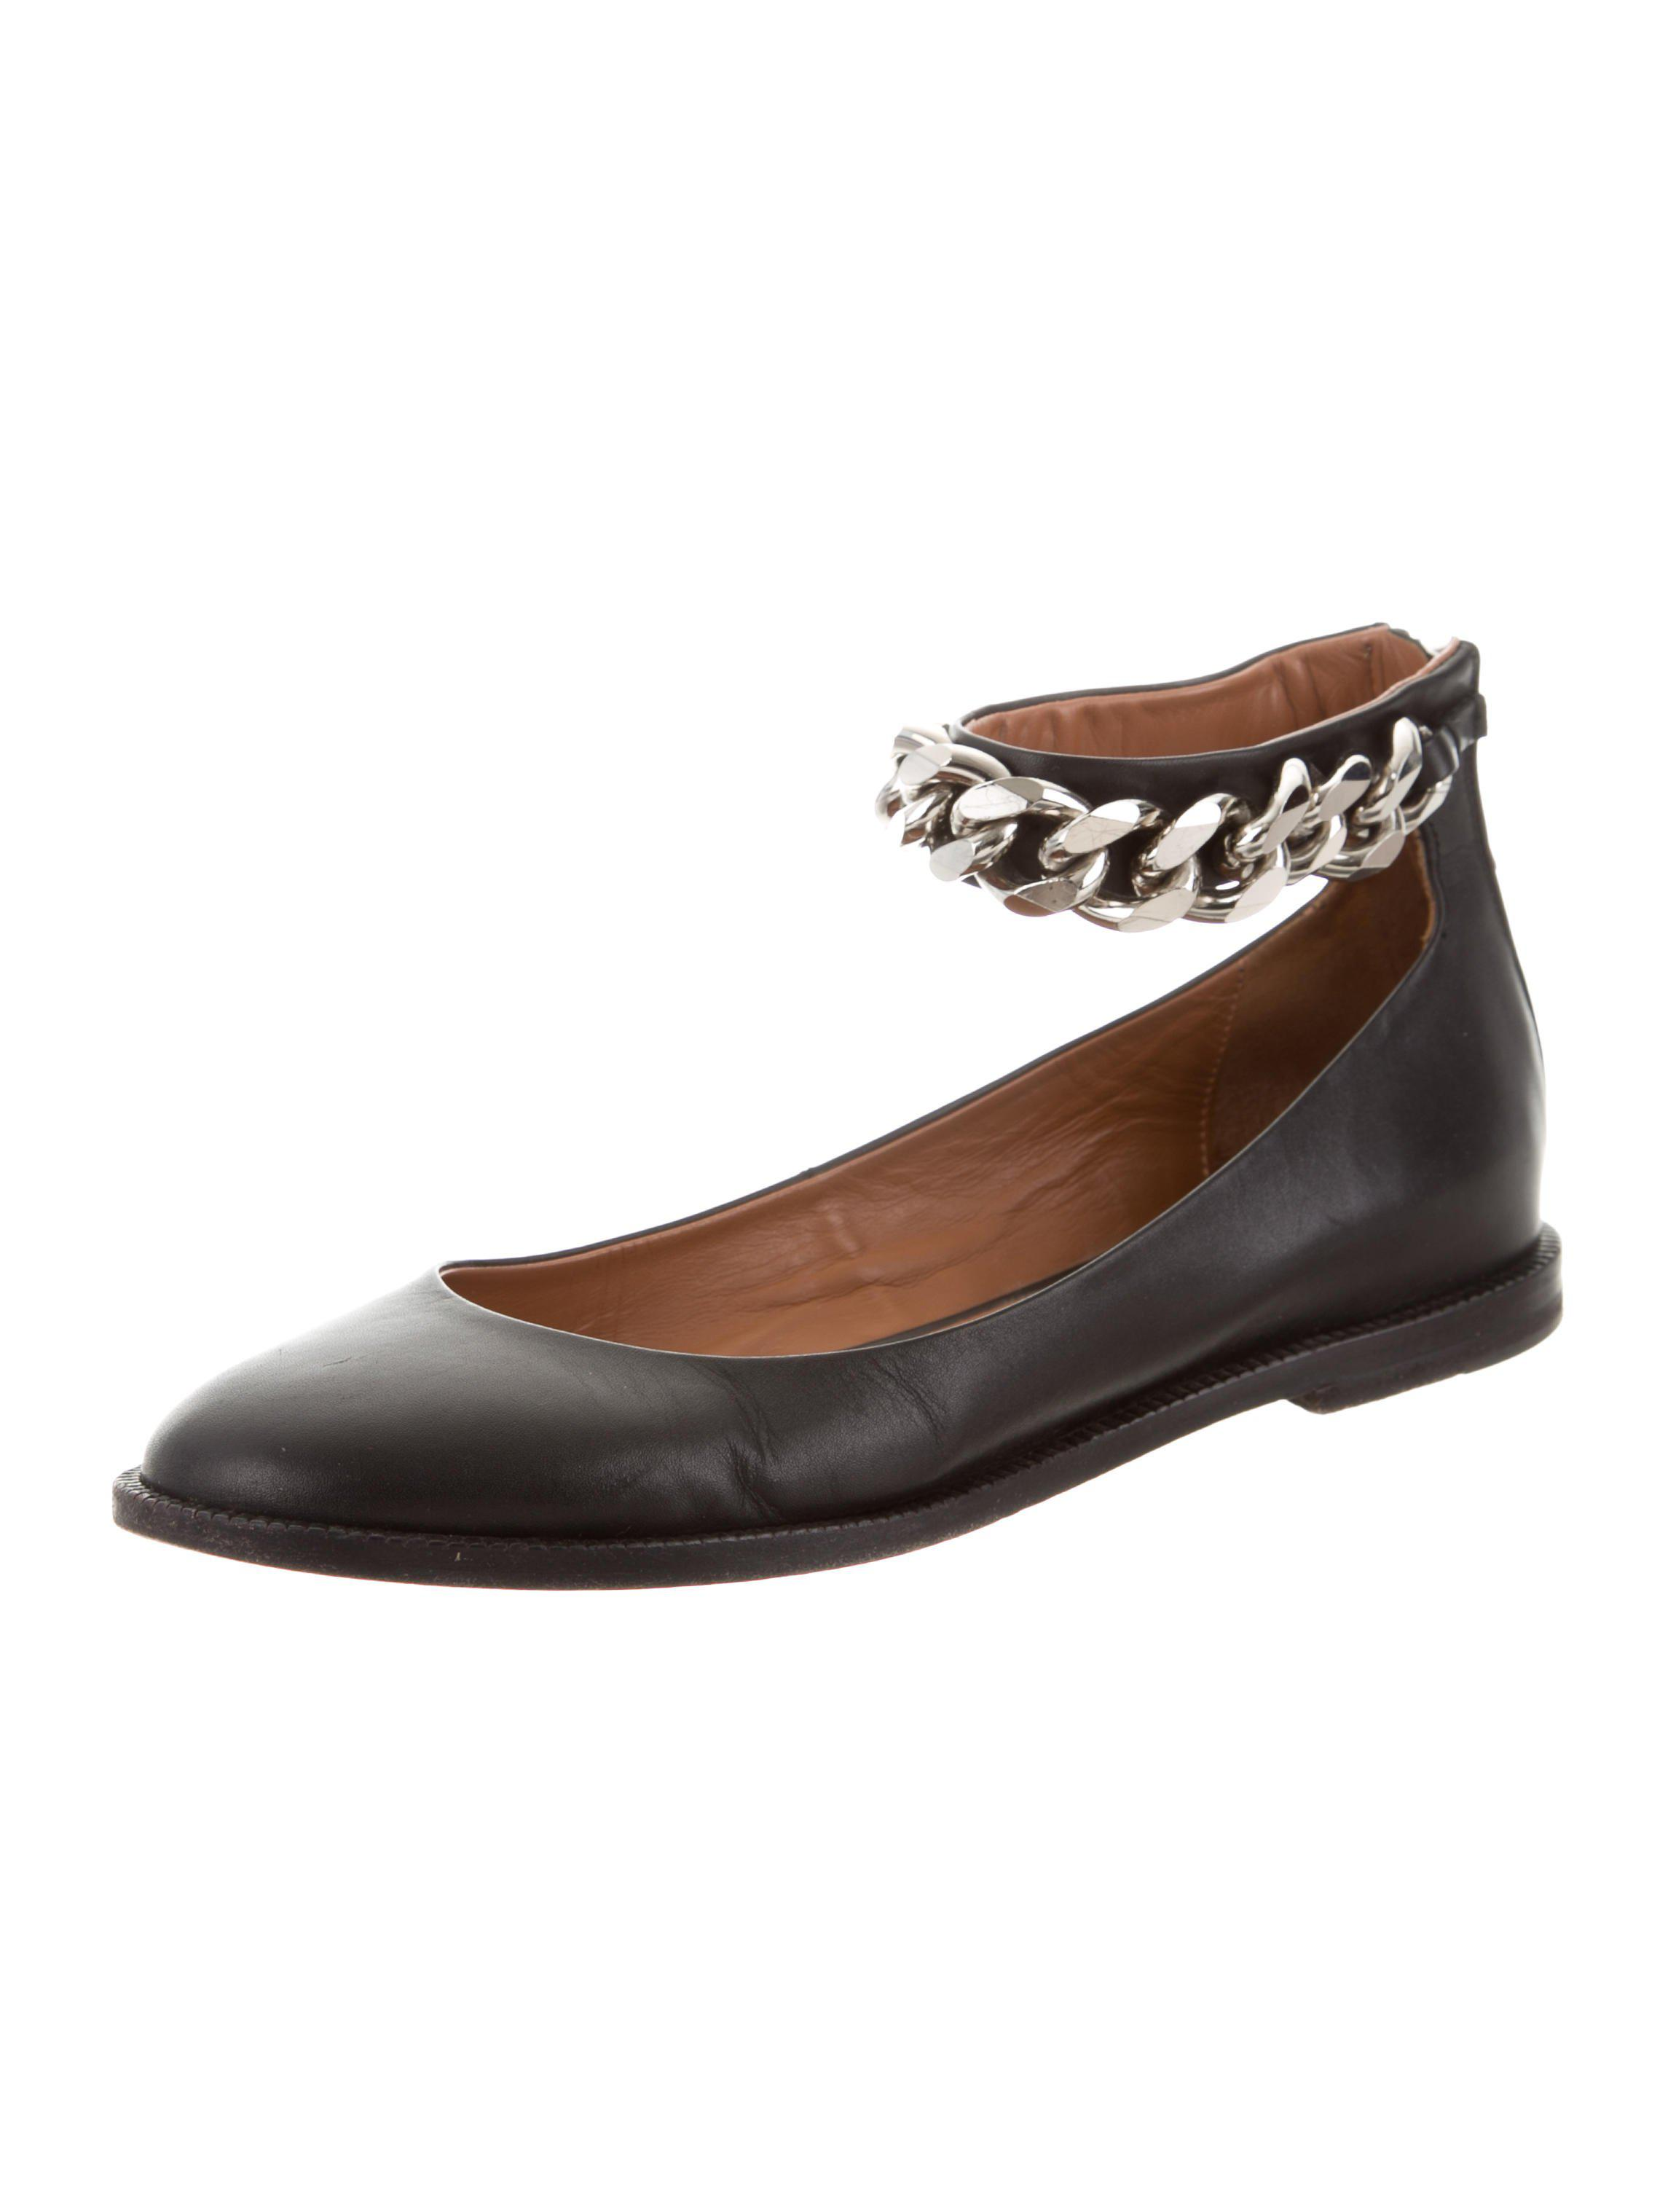 Burberry Chain-Link Round-Toe Flats pay with visa online free shipping pay with paypal buy cheap pick a best 2vyHkpdjy9